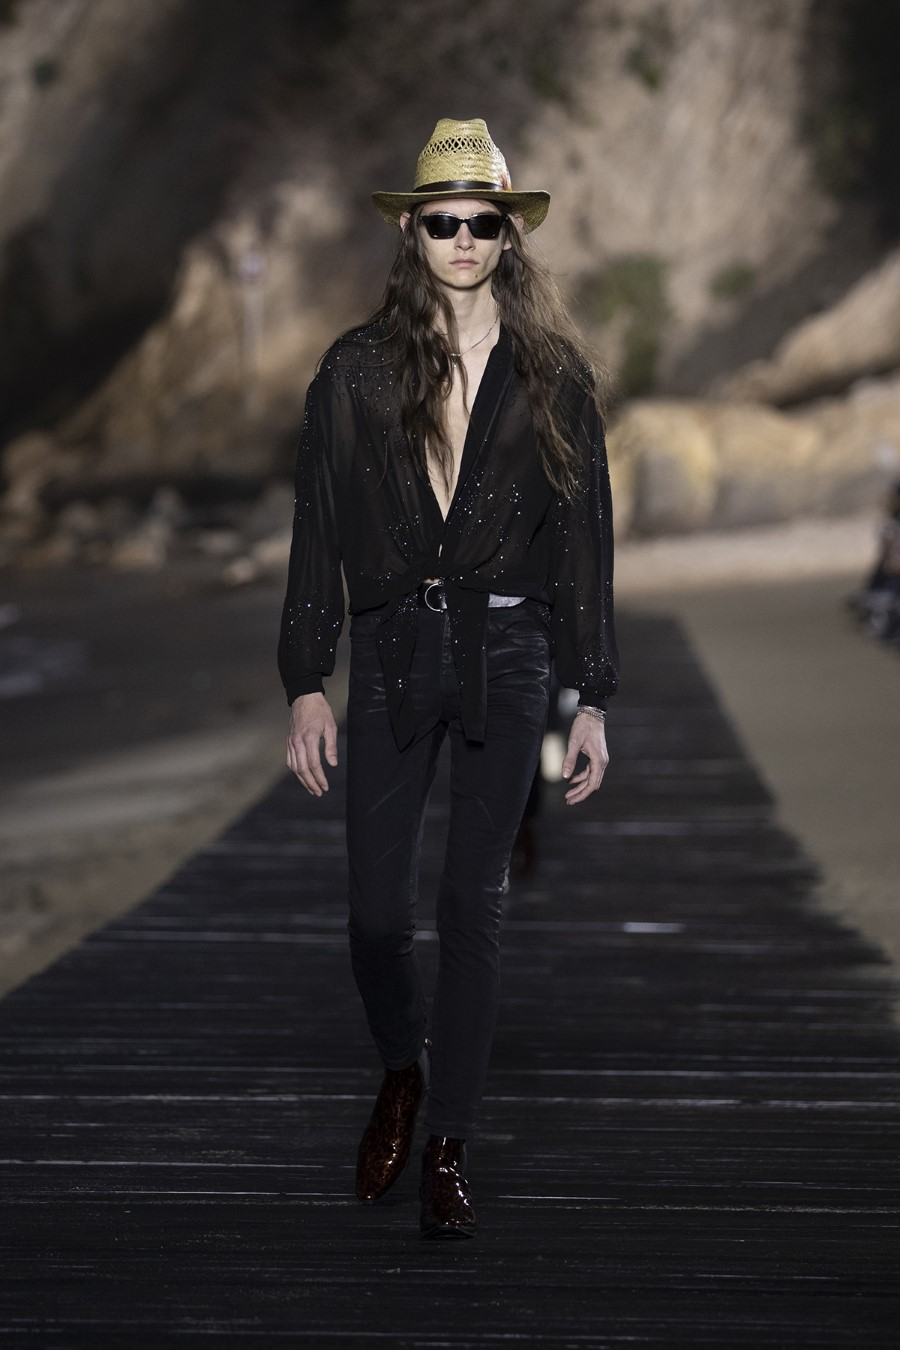 Saint Laurent - Printemps-Été 2020 - Los Angeles